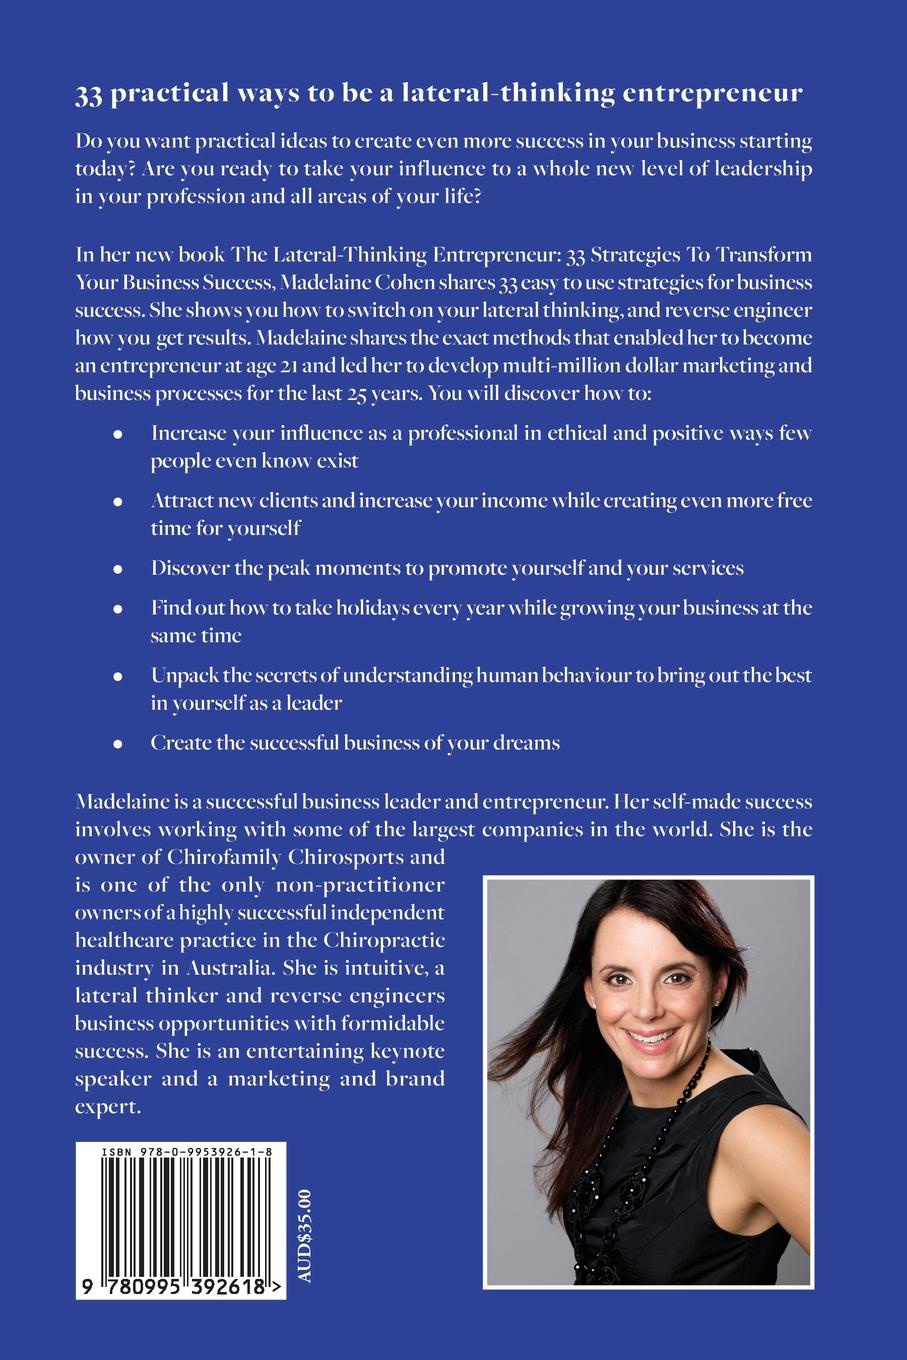 Madelaine Cohen The Lateral-Thinking Entrepreneur - 33 Strategies to transform your business success harvey reese how to license your million dollar idea cash in on your inventions new product ideas software web business ideas and more